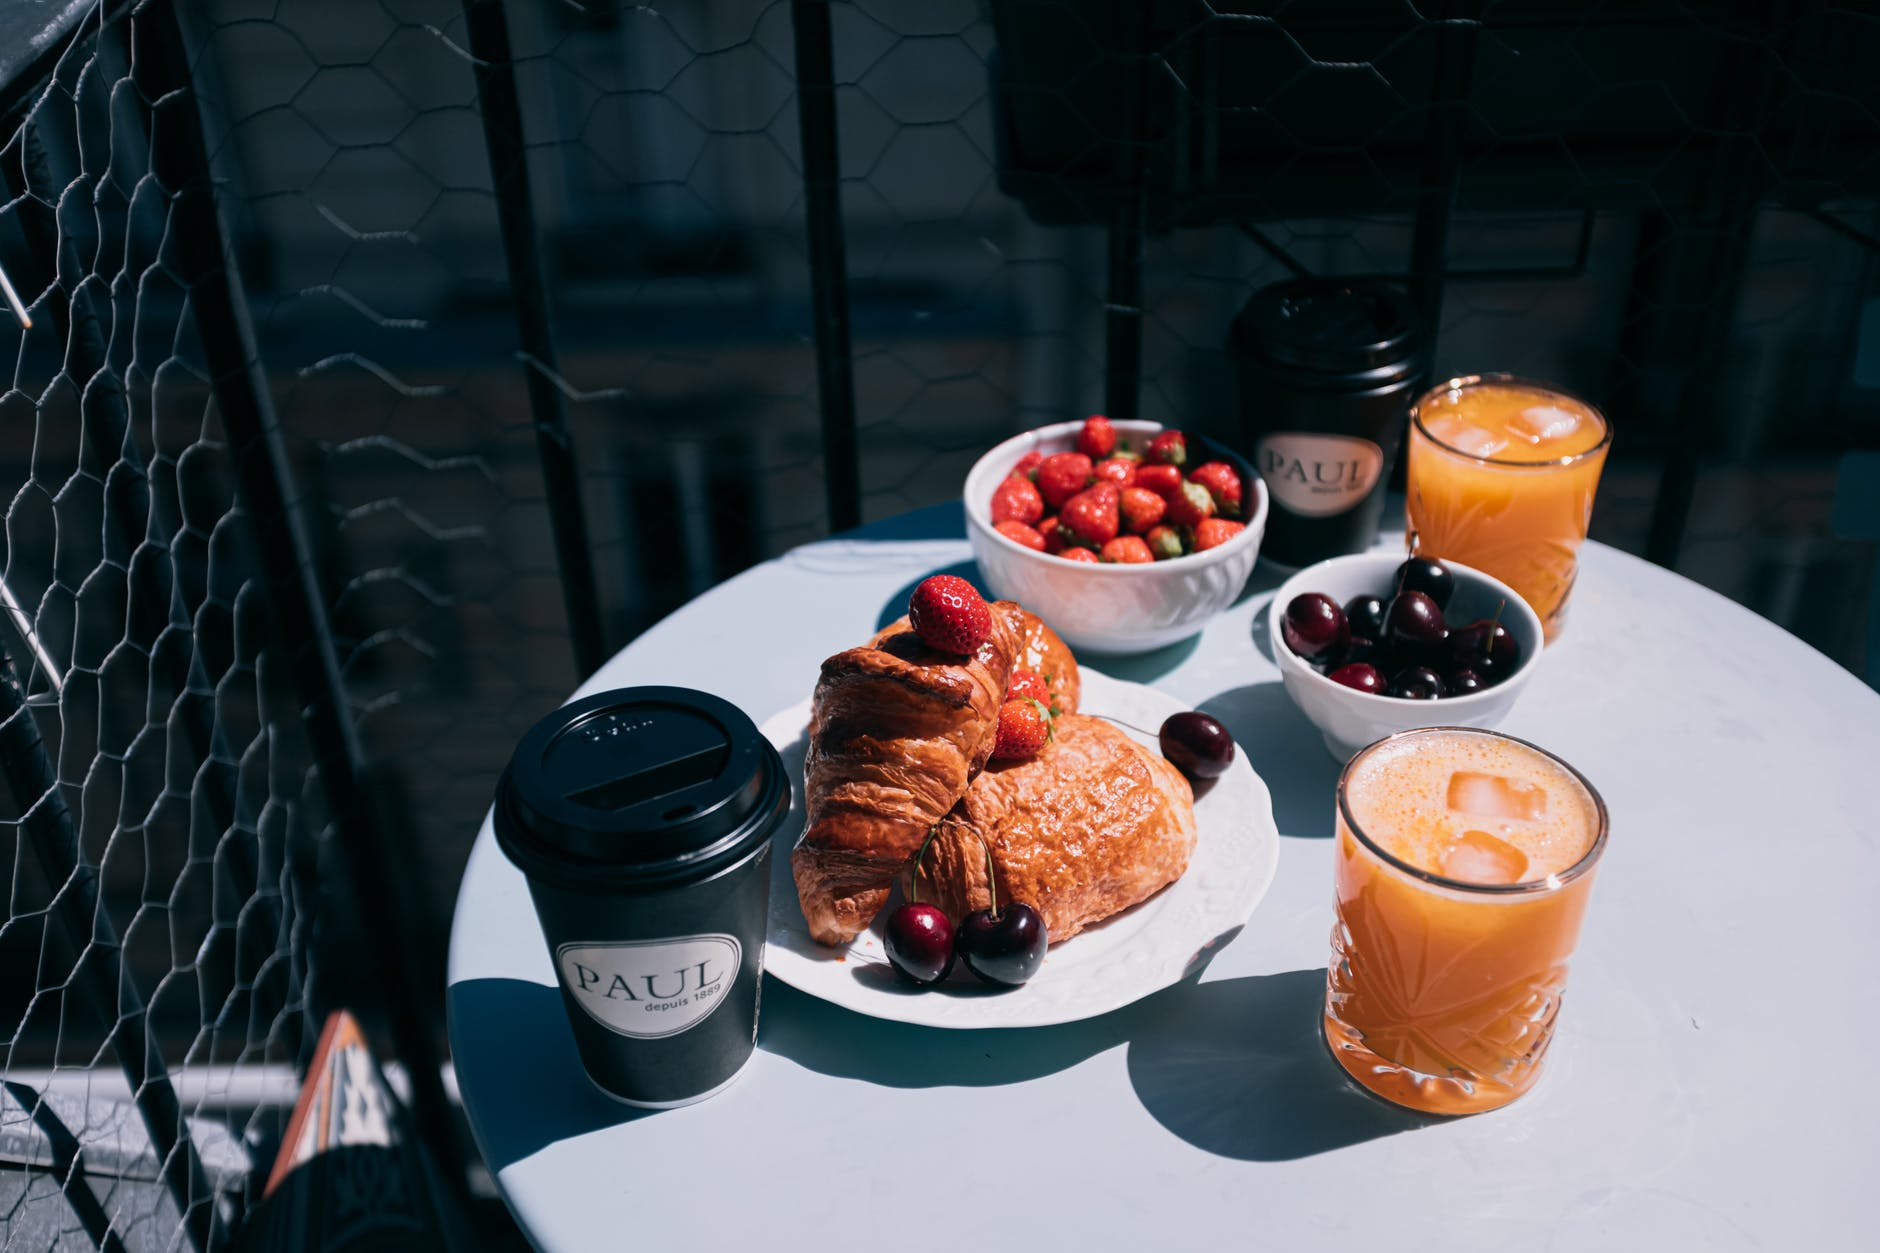 A small round table with croissants, fruits and coffee.